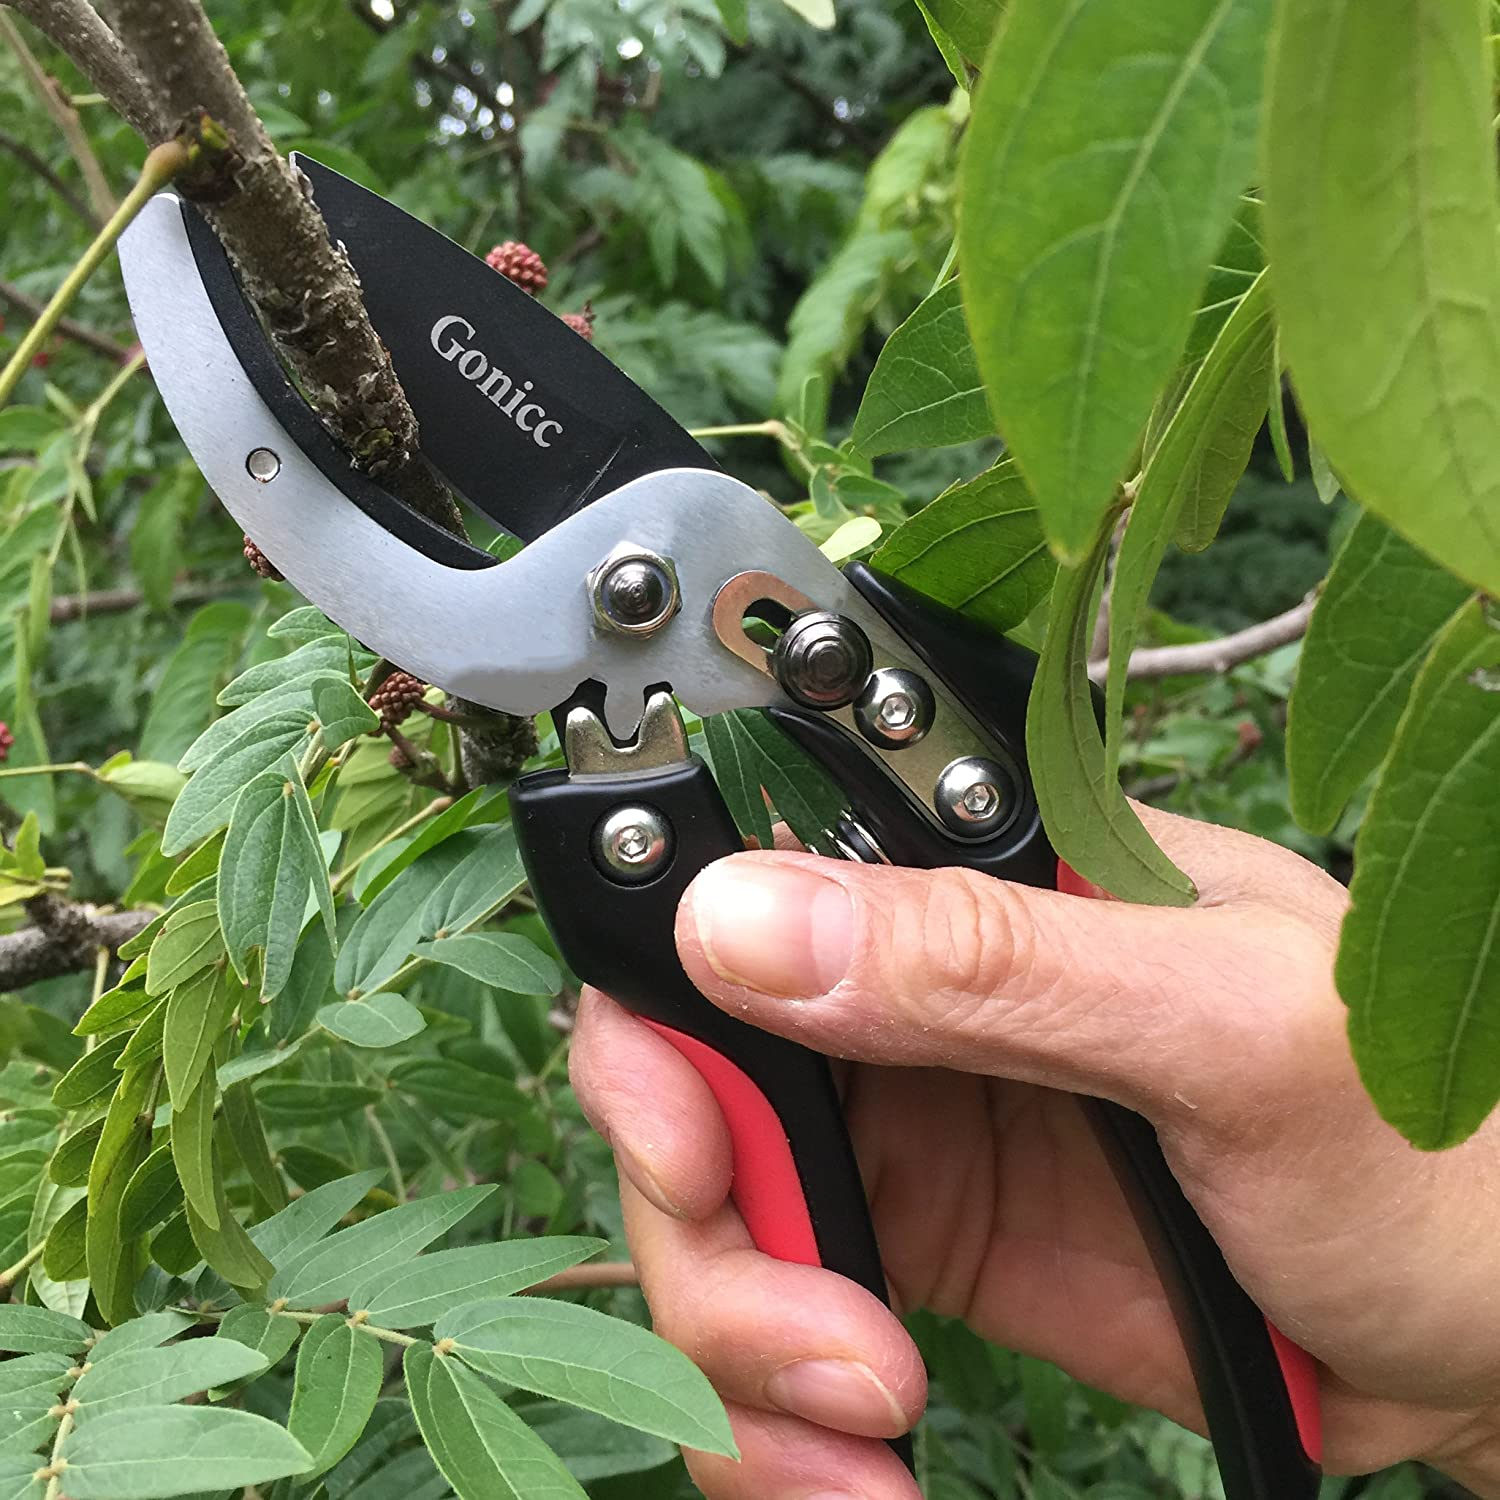 Gonicc Anvil Pruning Shears